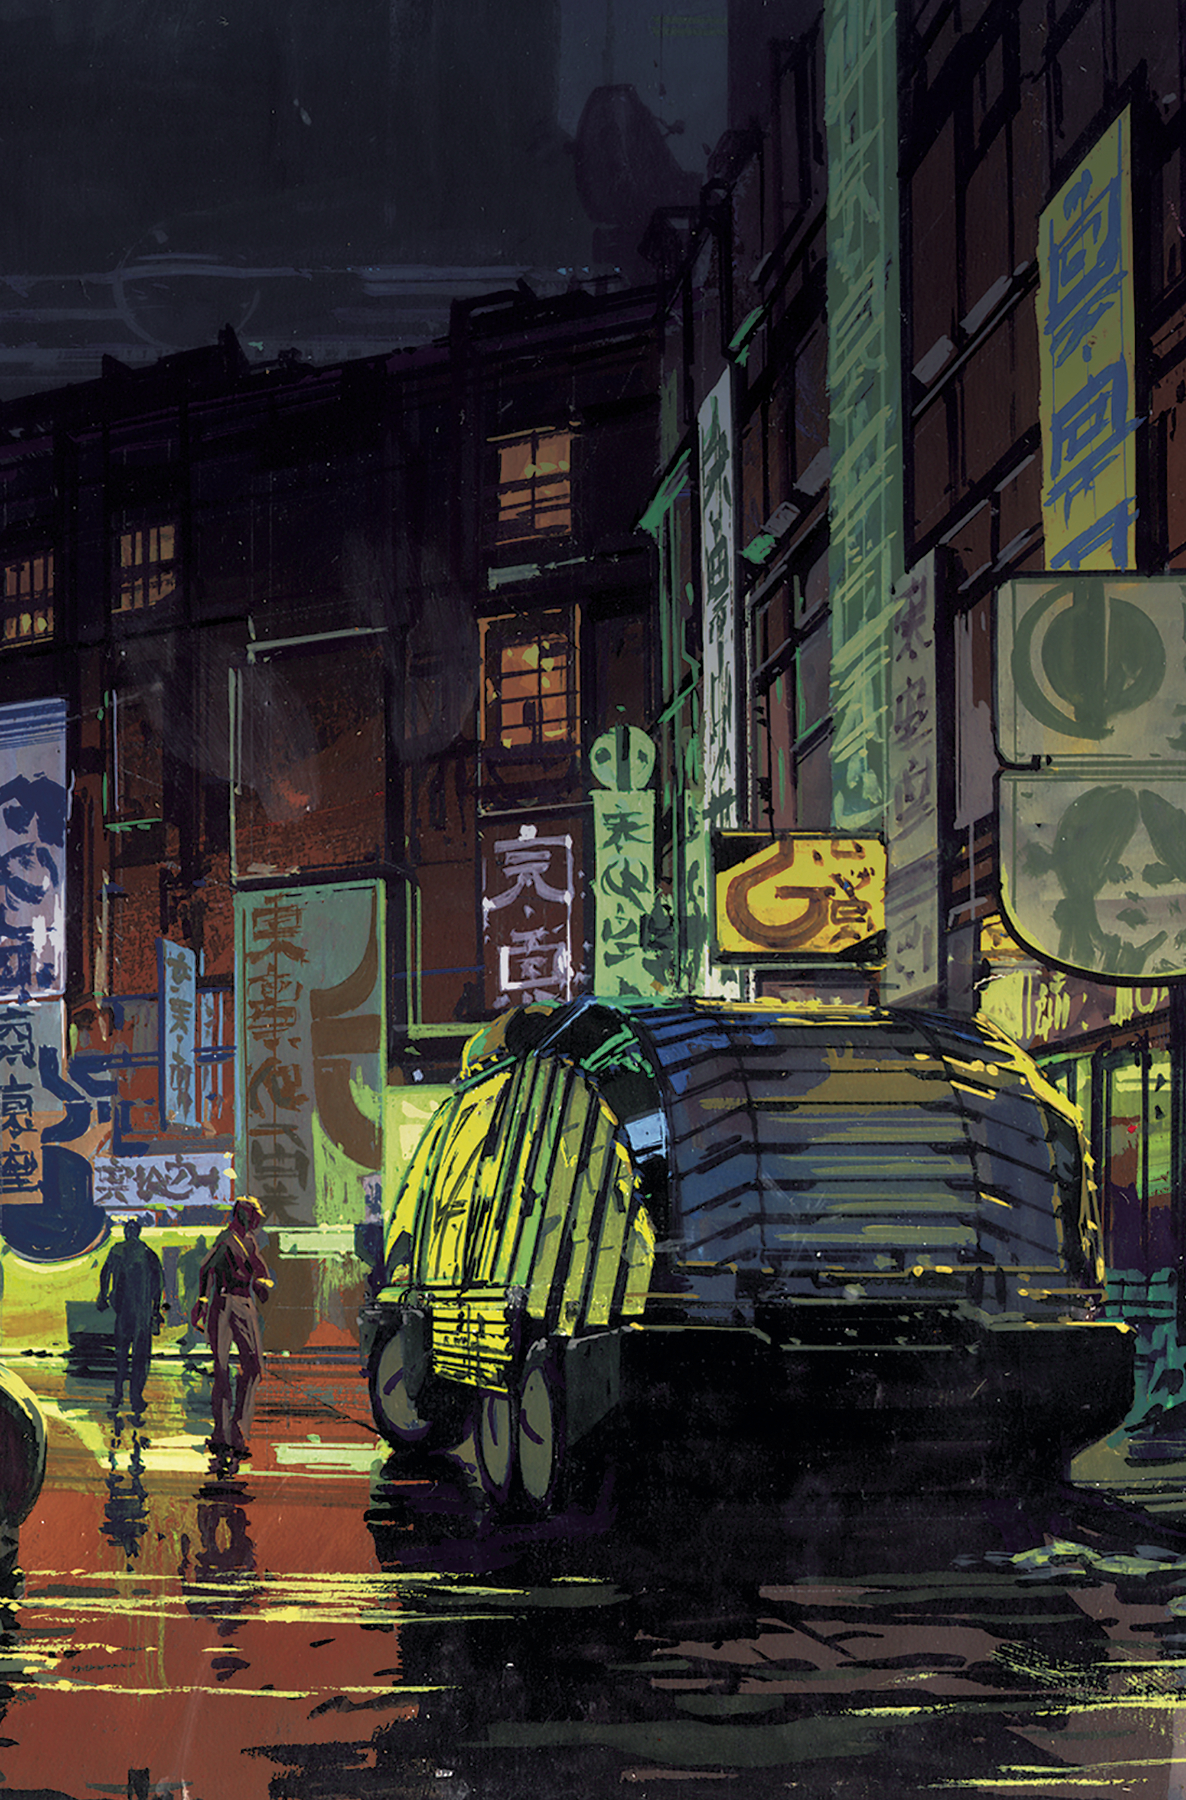 BLADE RUNNER 2019 SYD MEAD PACK